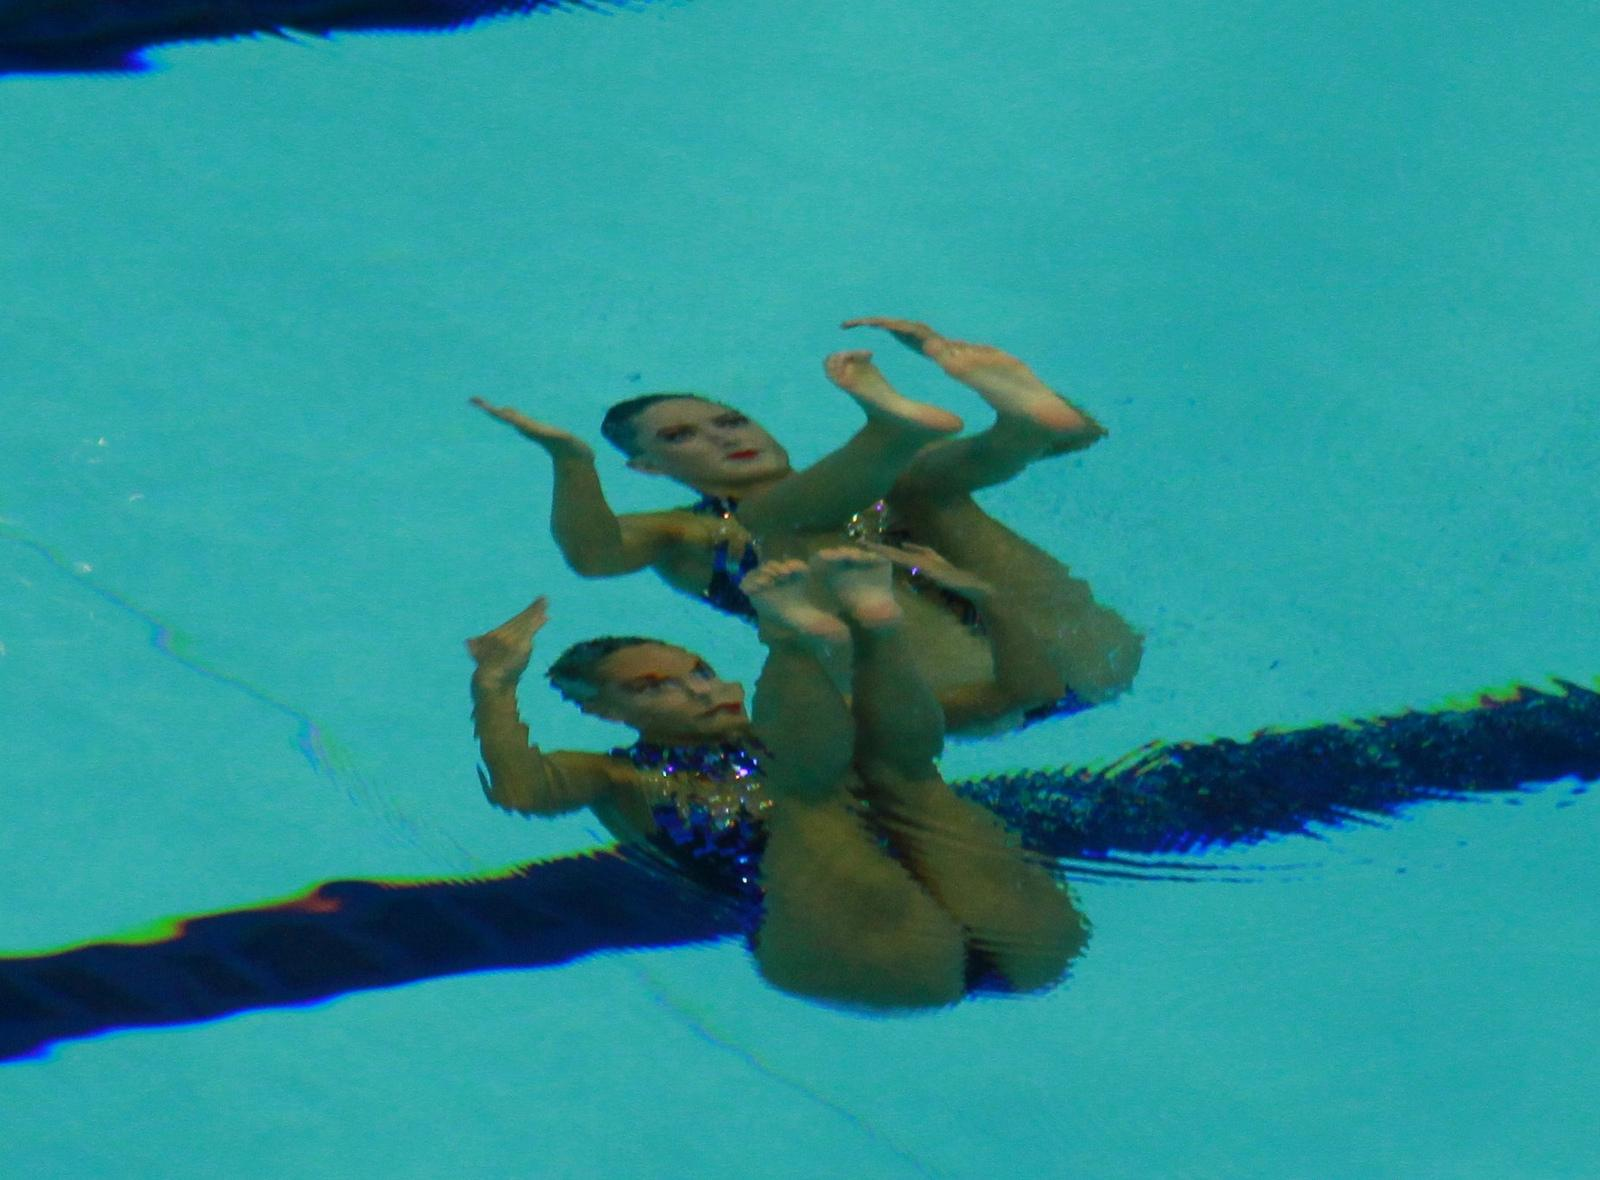 546987932_GreatBritainSynchronisedSwimming20_122_116lo.jpg